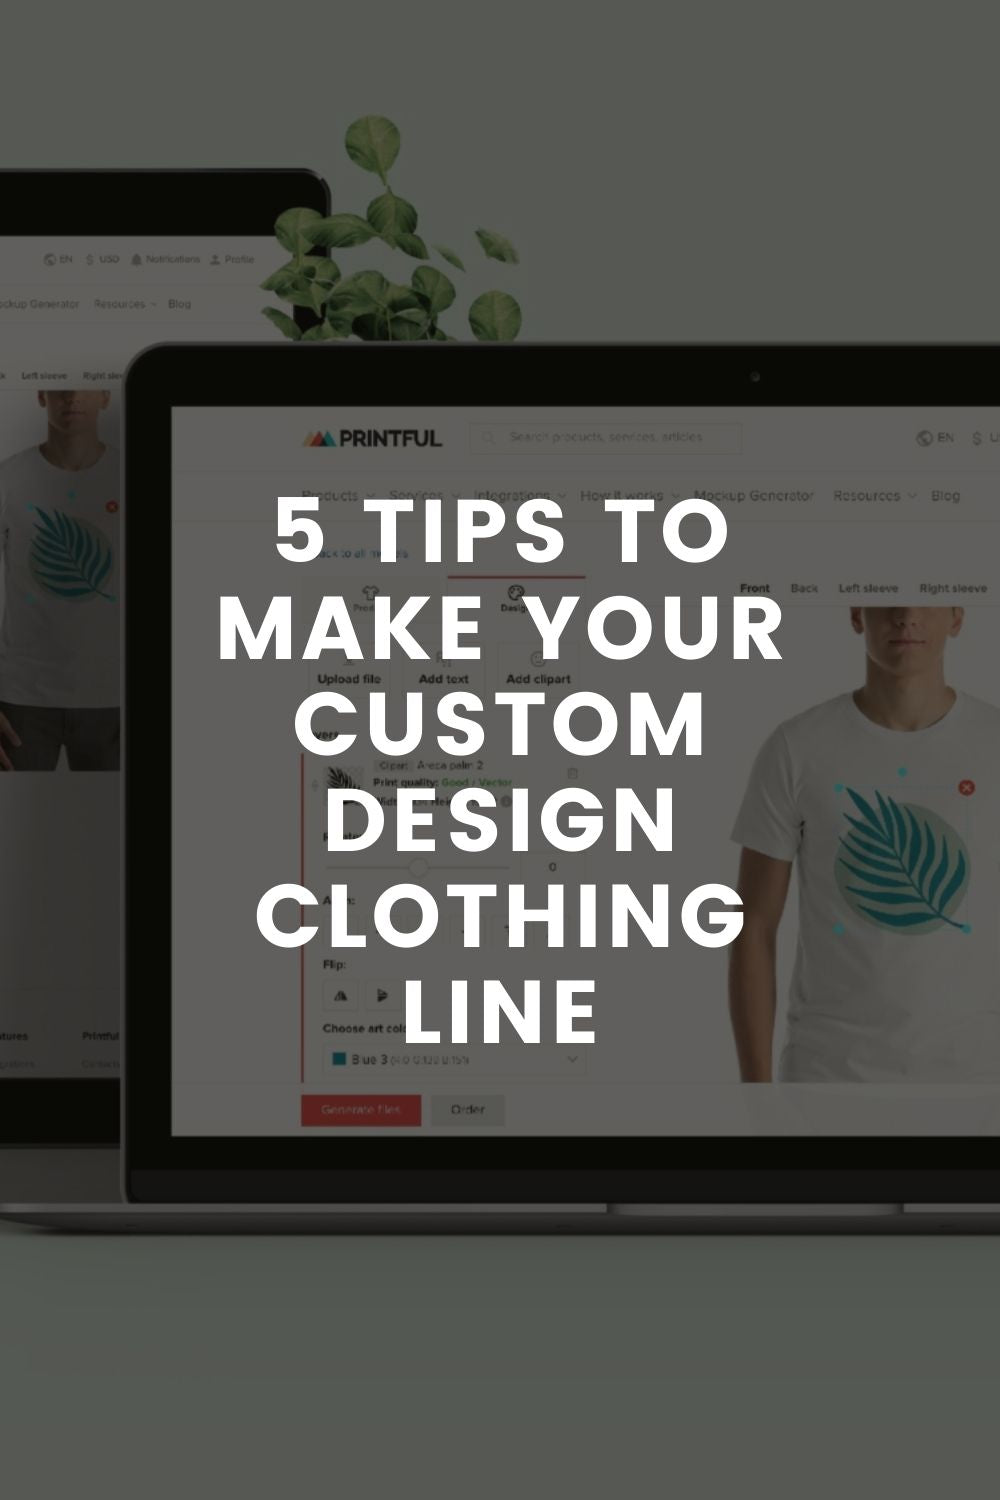 5 Tips to Make Your Custom Design Clothing Line